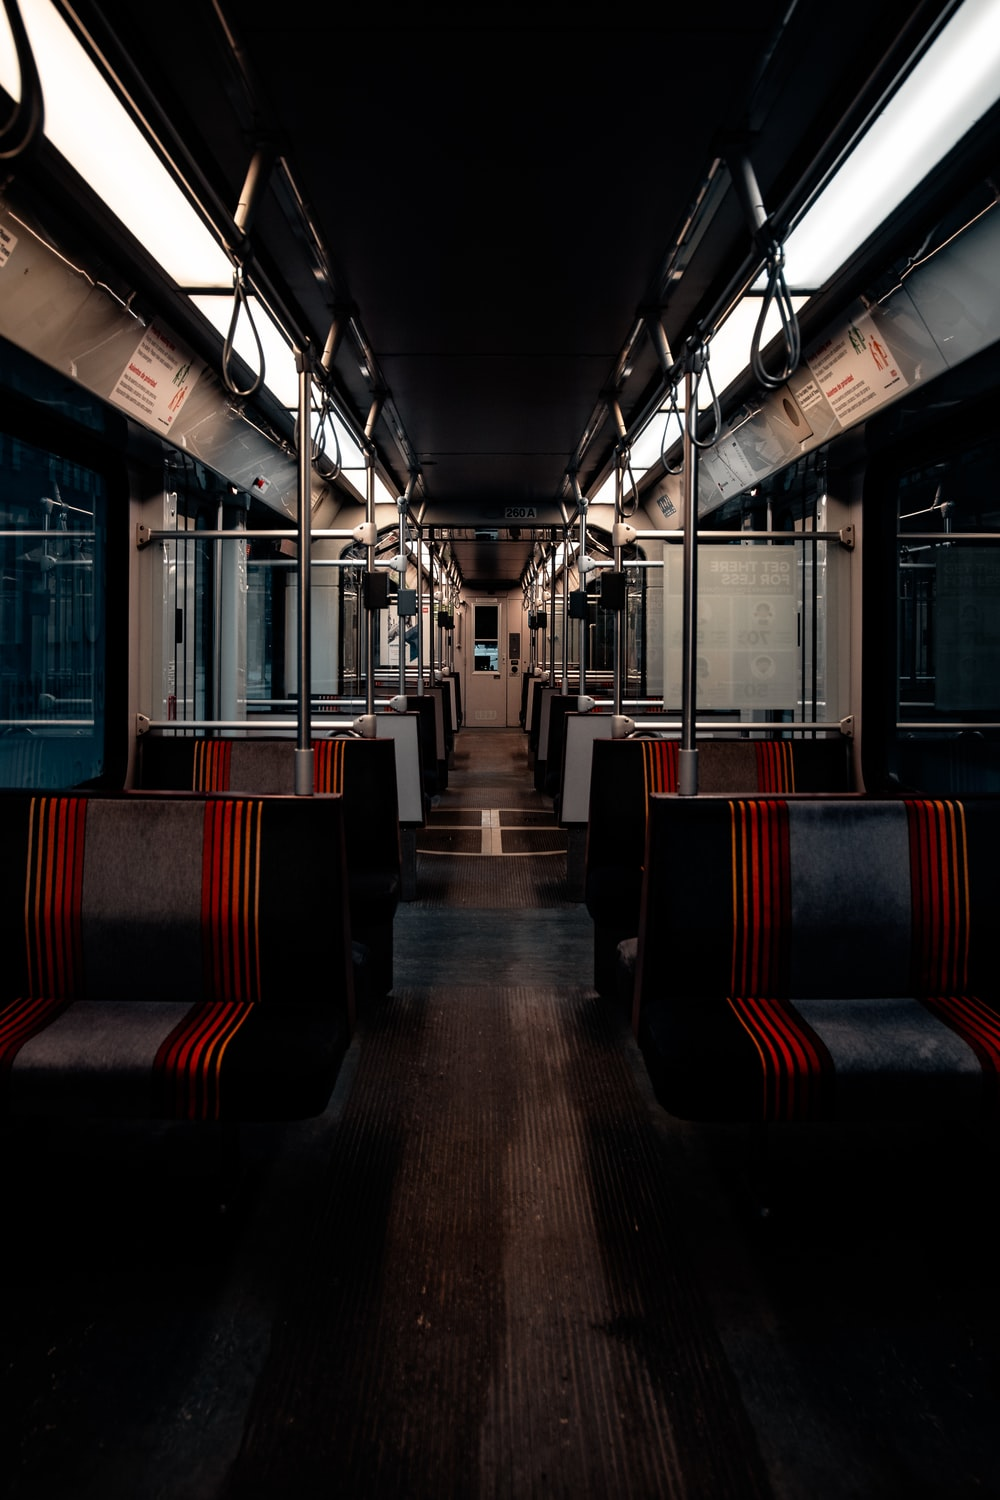 red and blue train seats